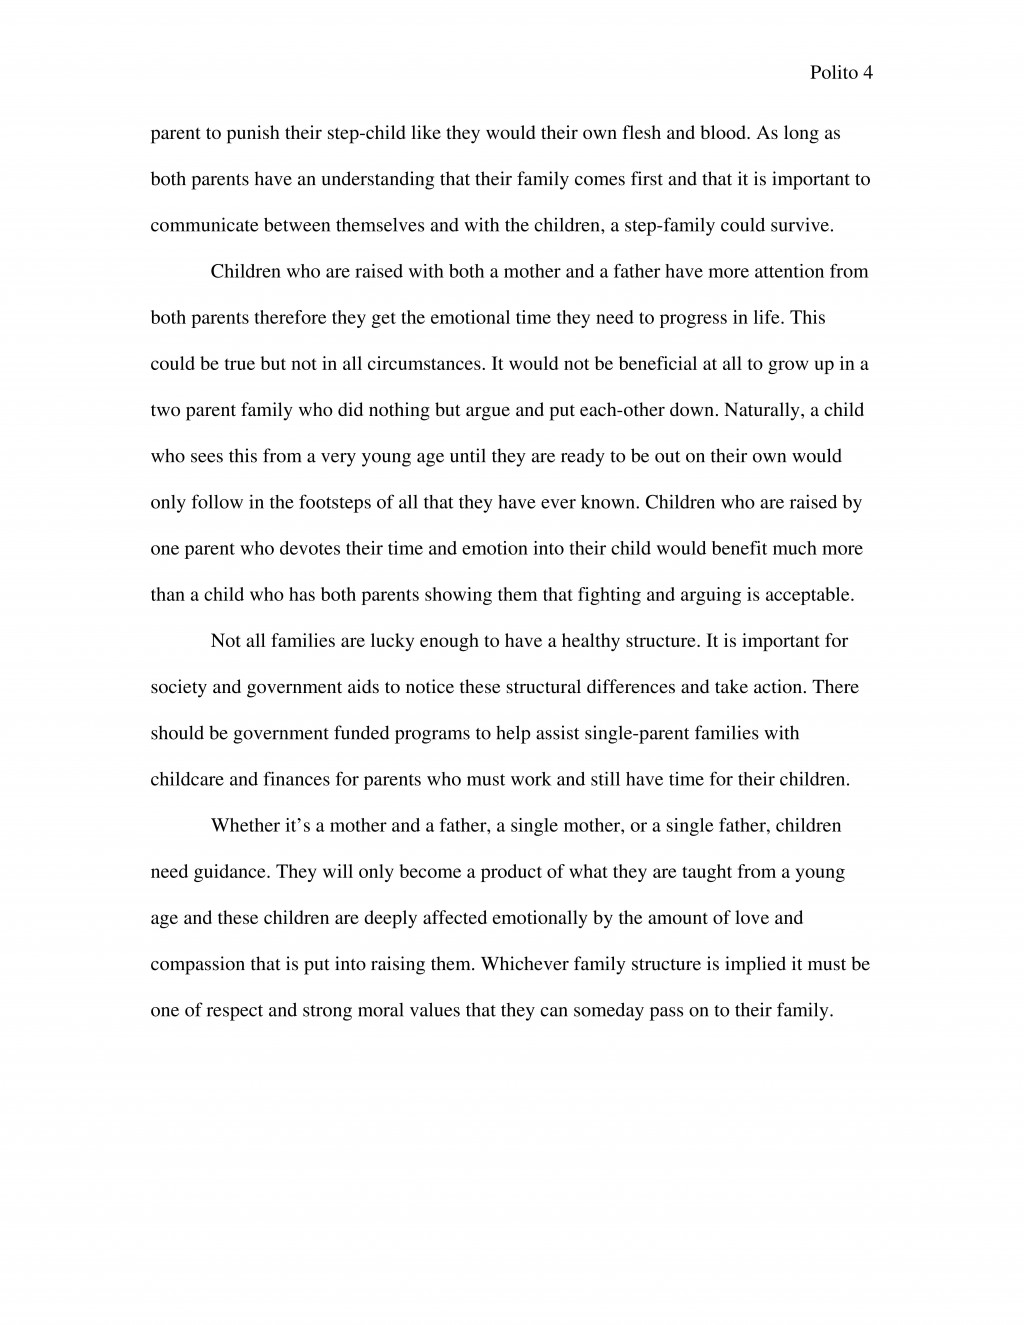 012 Essay Example Expository Sample 2 Impressive Samples Theme Examples High School For 7th Grade Large